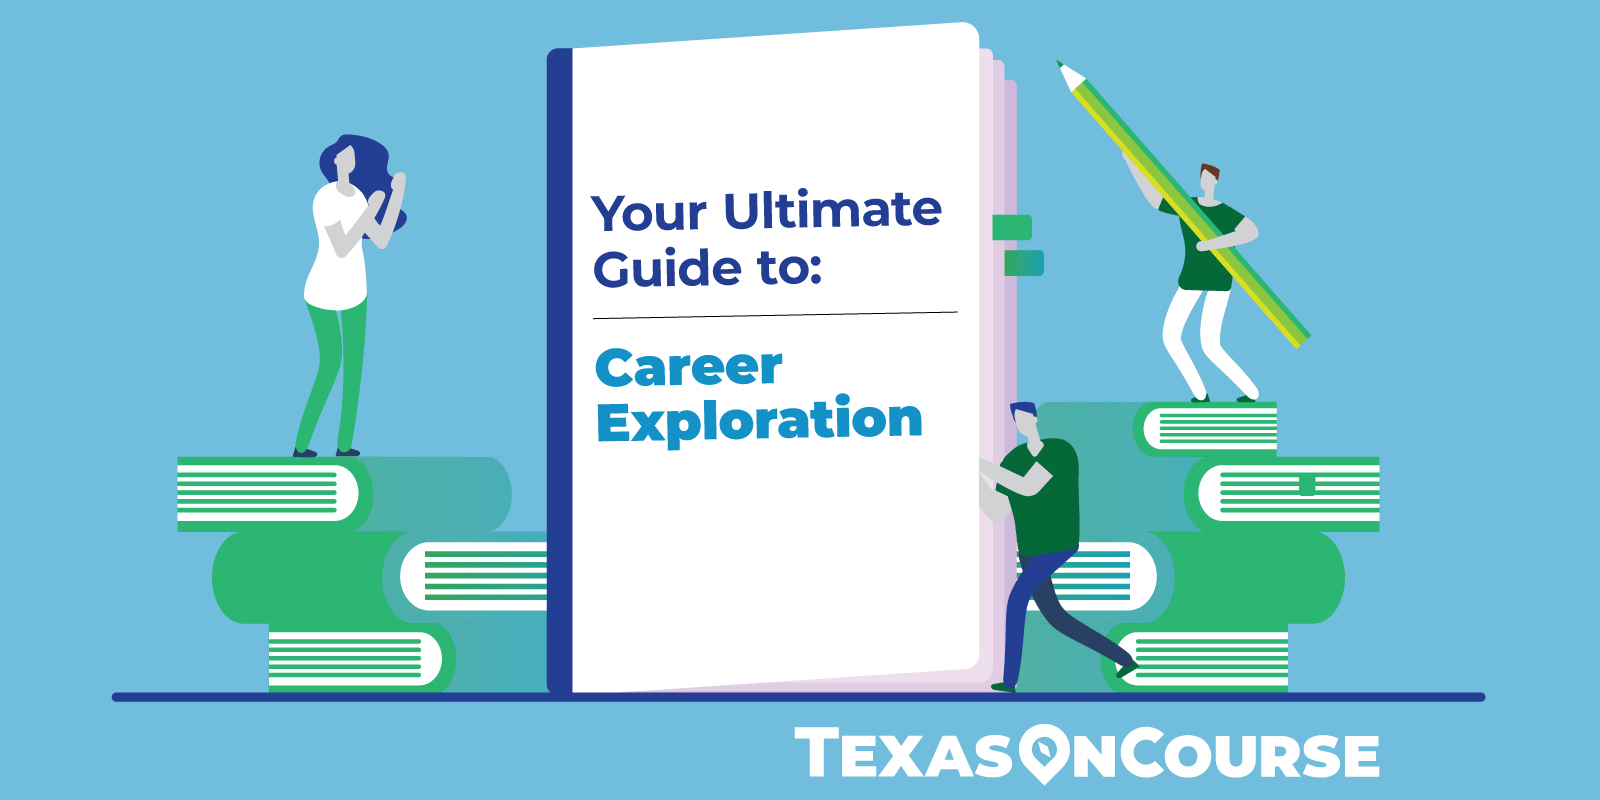 Your Ultimate Guide to: Career Exploration